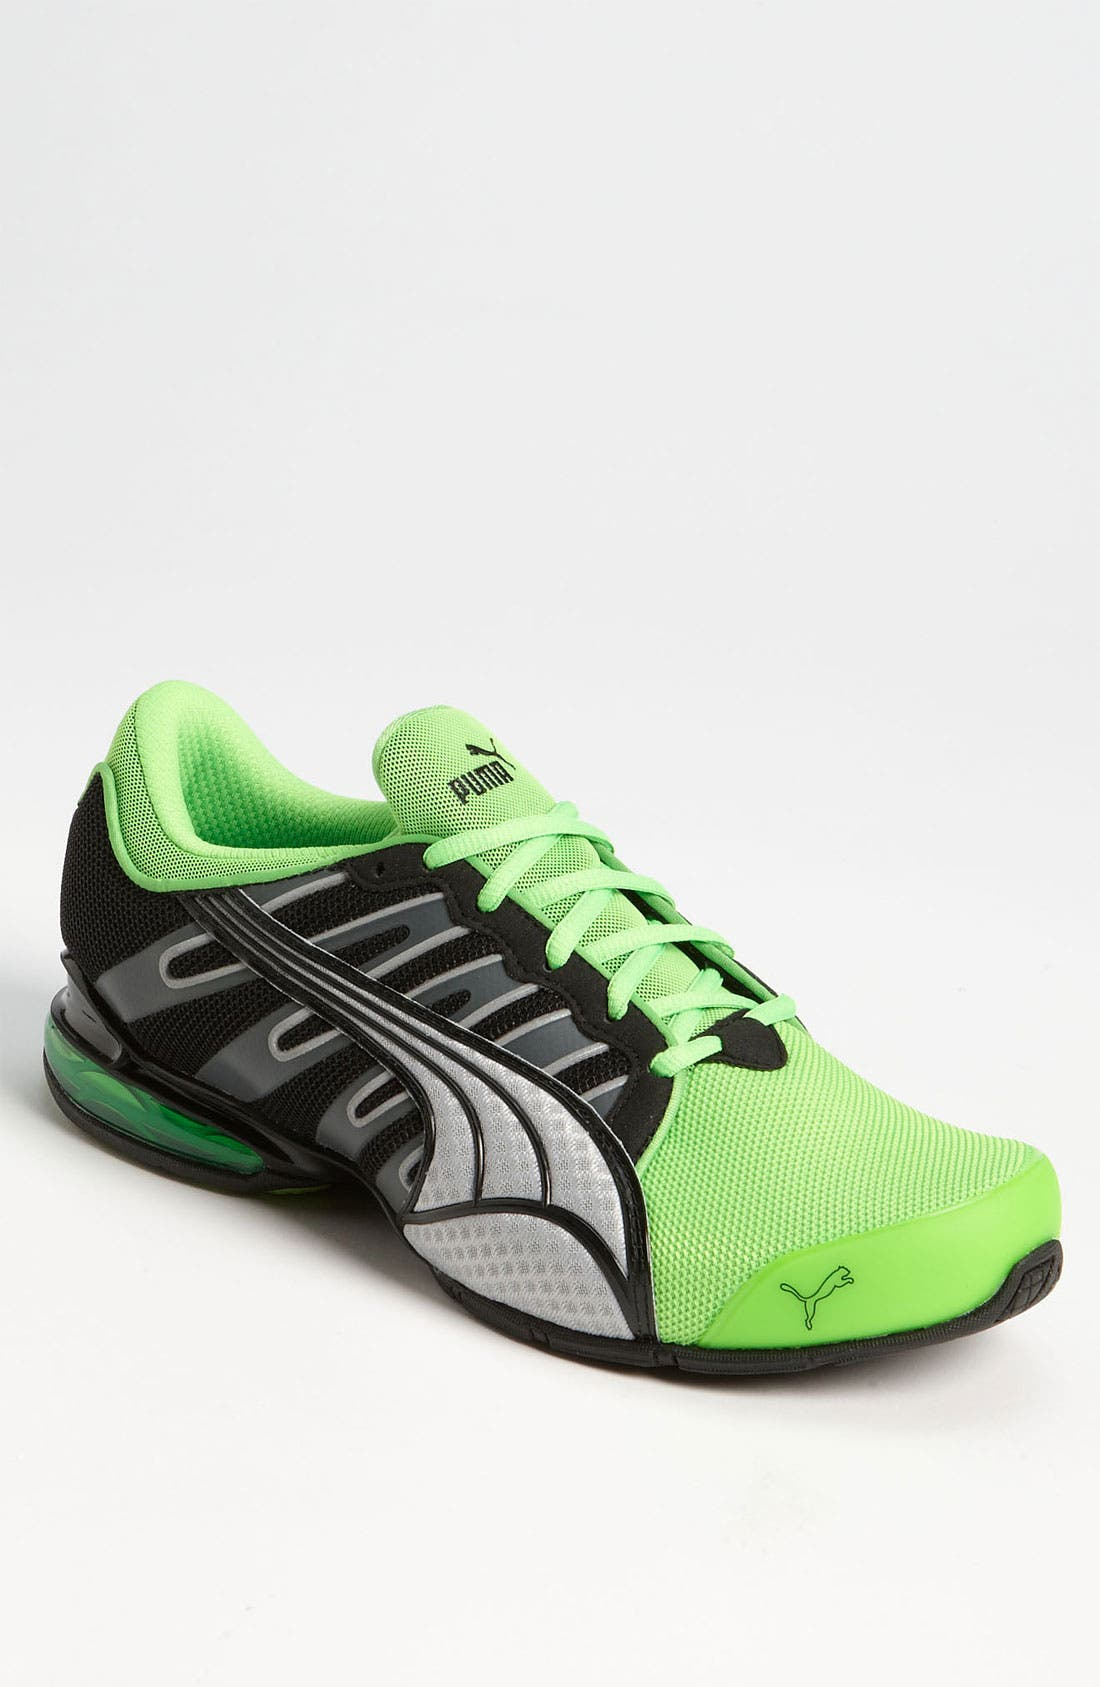 Main Image - PUMA 'Voltaic 3 NM' Running Shoe (Men)